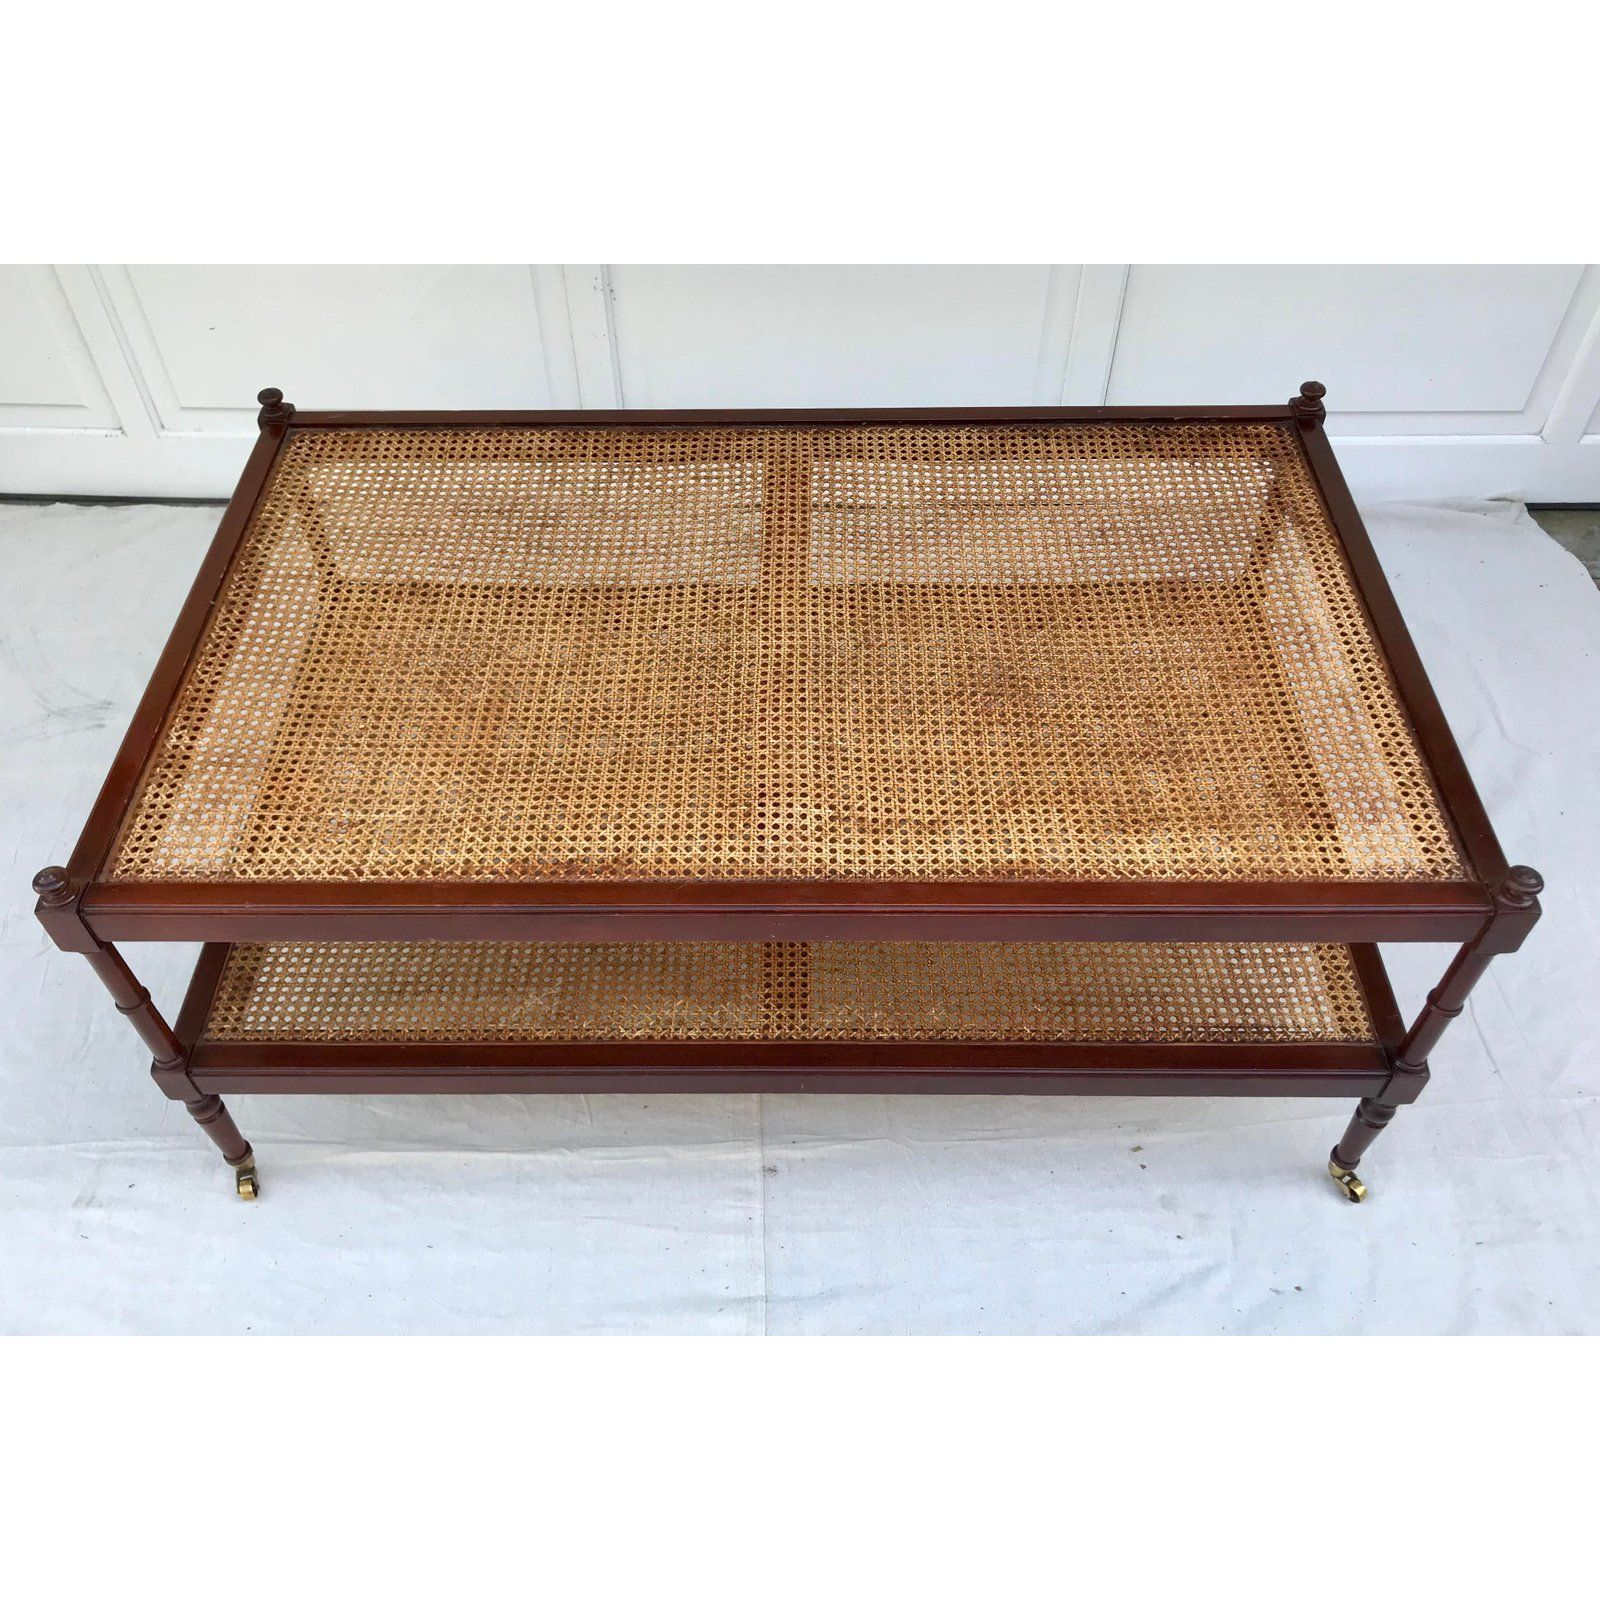 Baker Furniture Company Americana Baker Furniture Cane Coffee Table On Brass Wheels For Sale Image 4 Of 8 Coffee Table Baker Furniture Home Living Room [ 1600 x 1600 Pixel ]